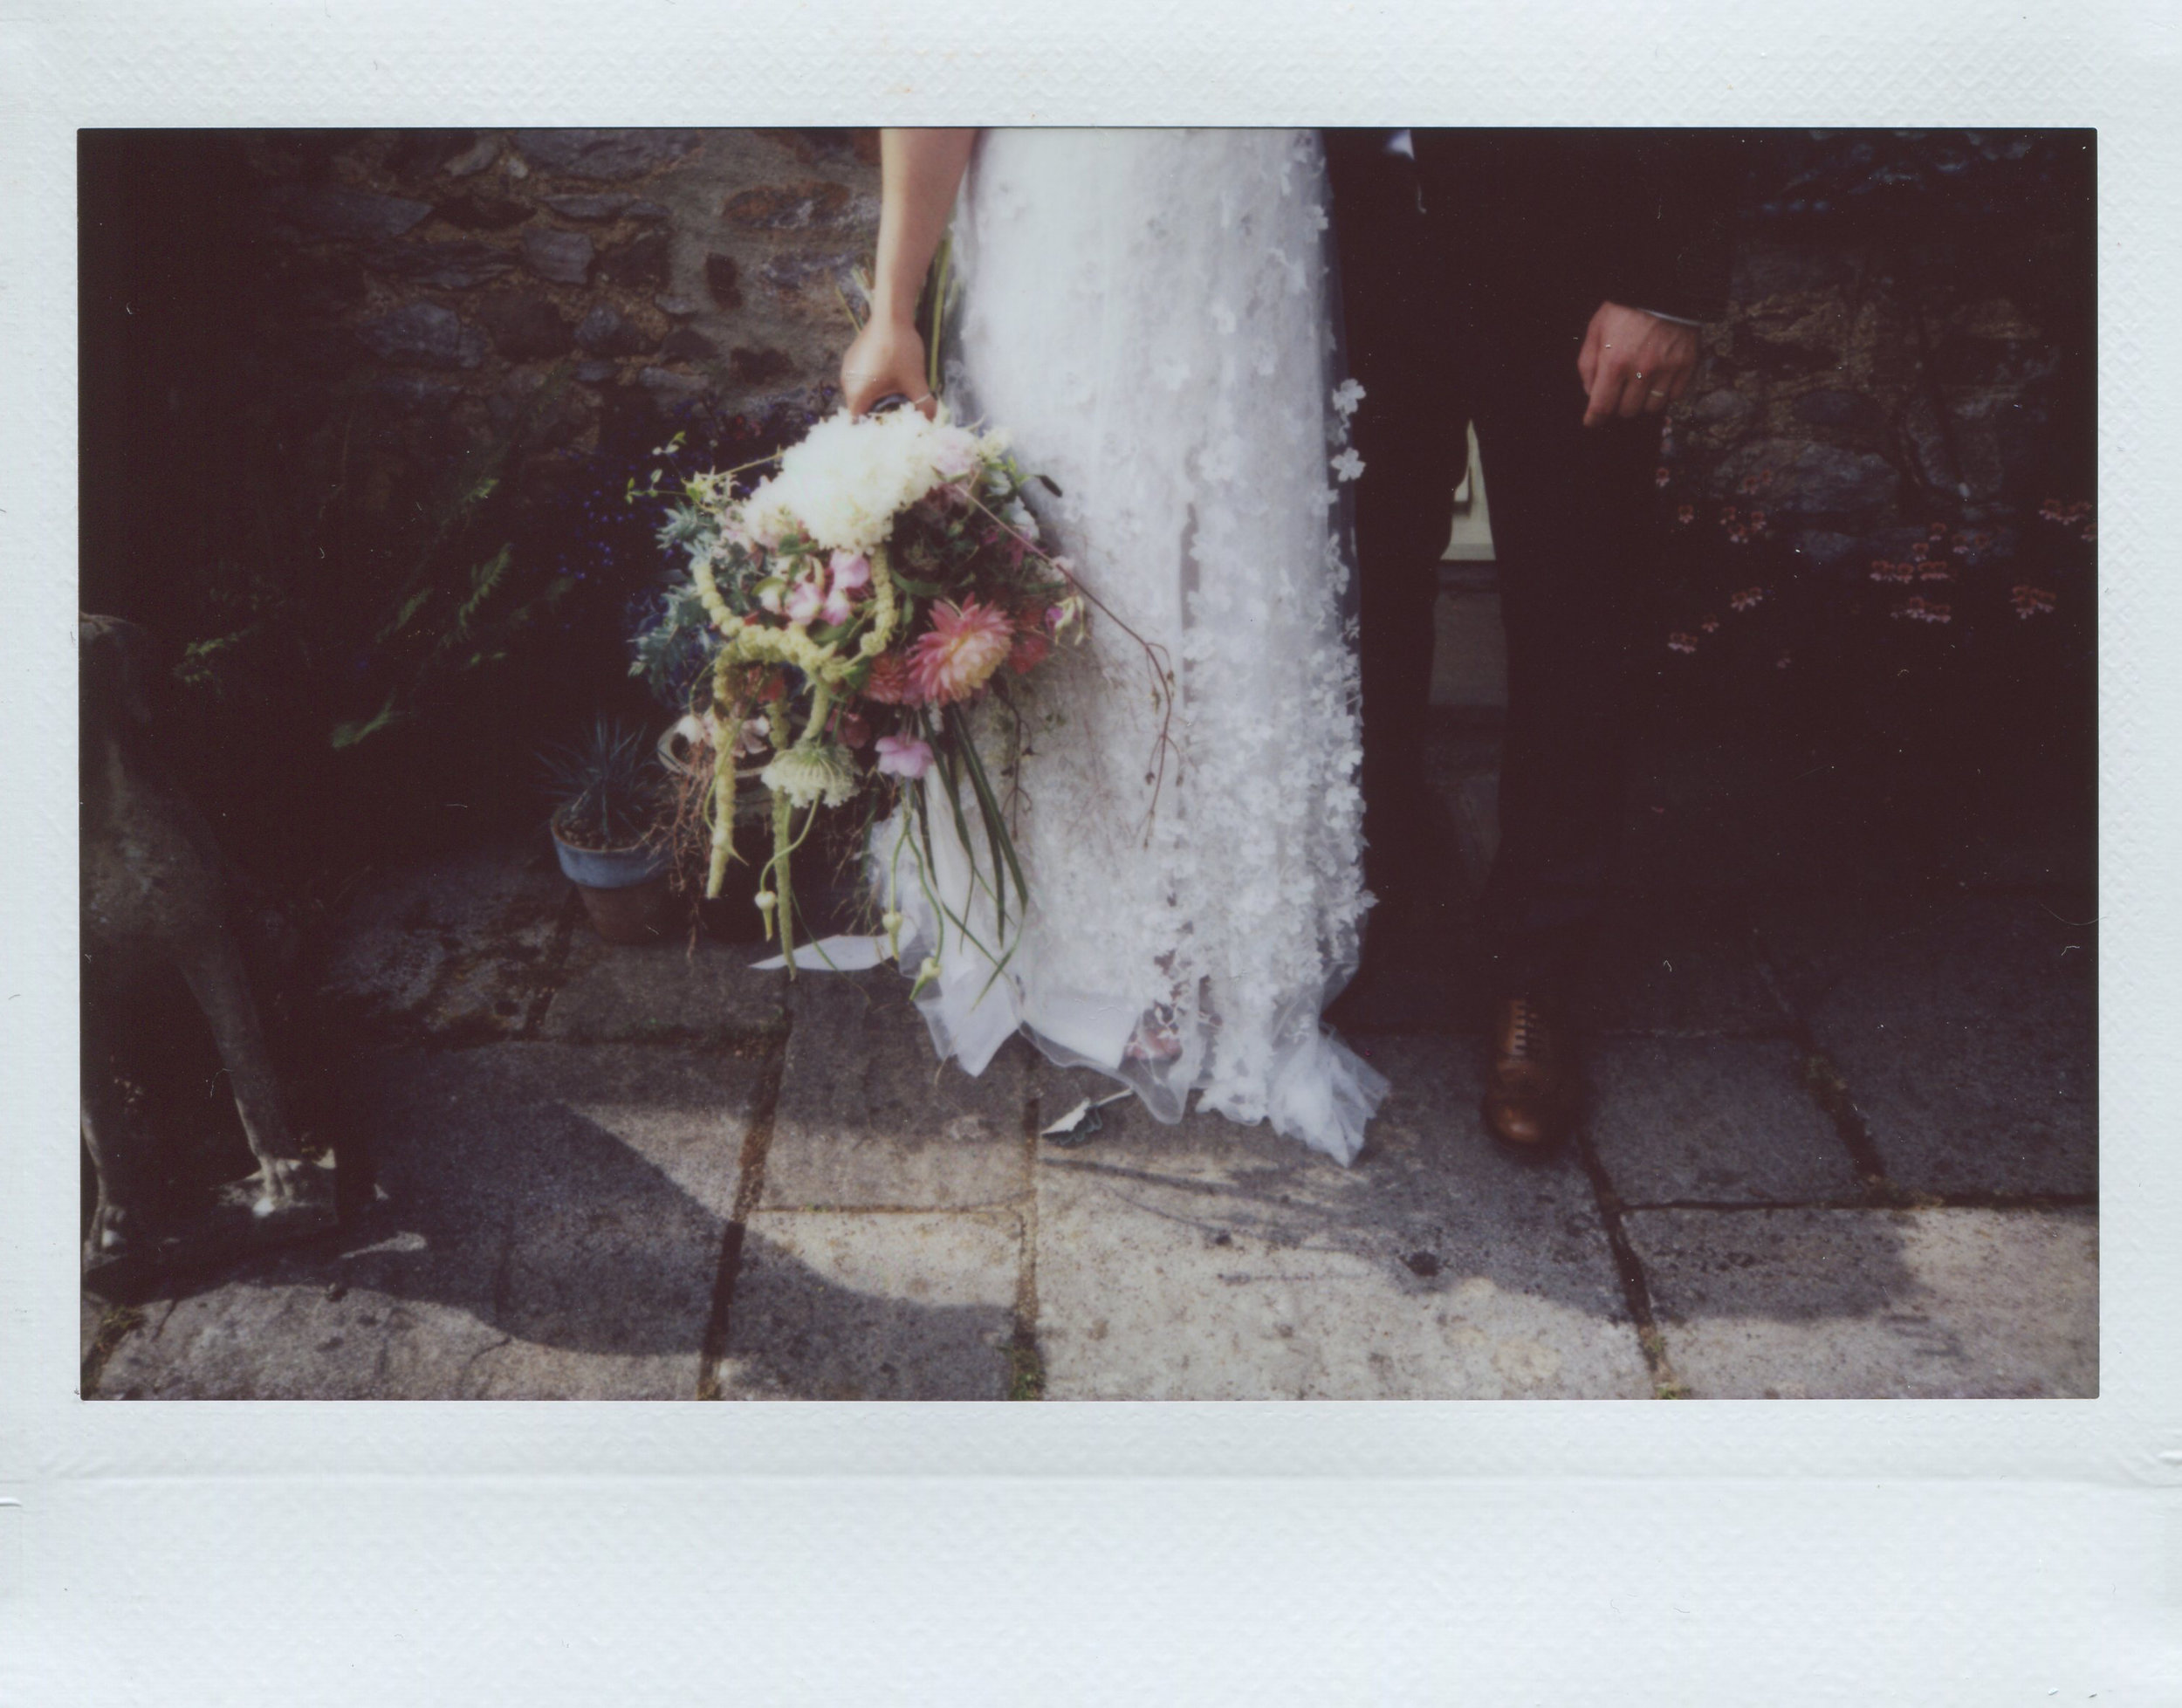 Instax wide wedding photography